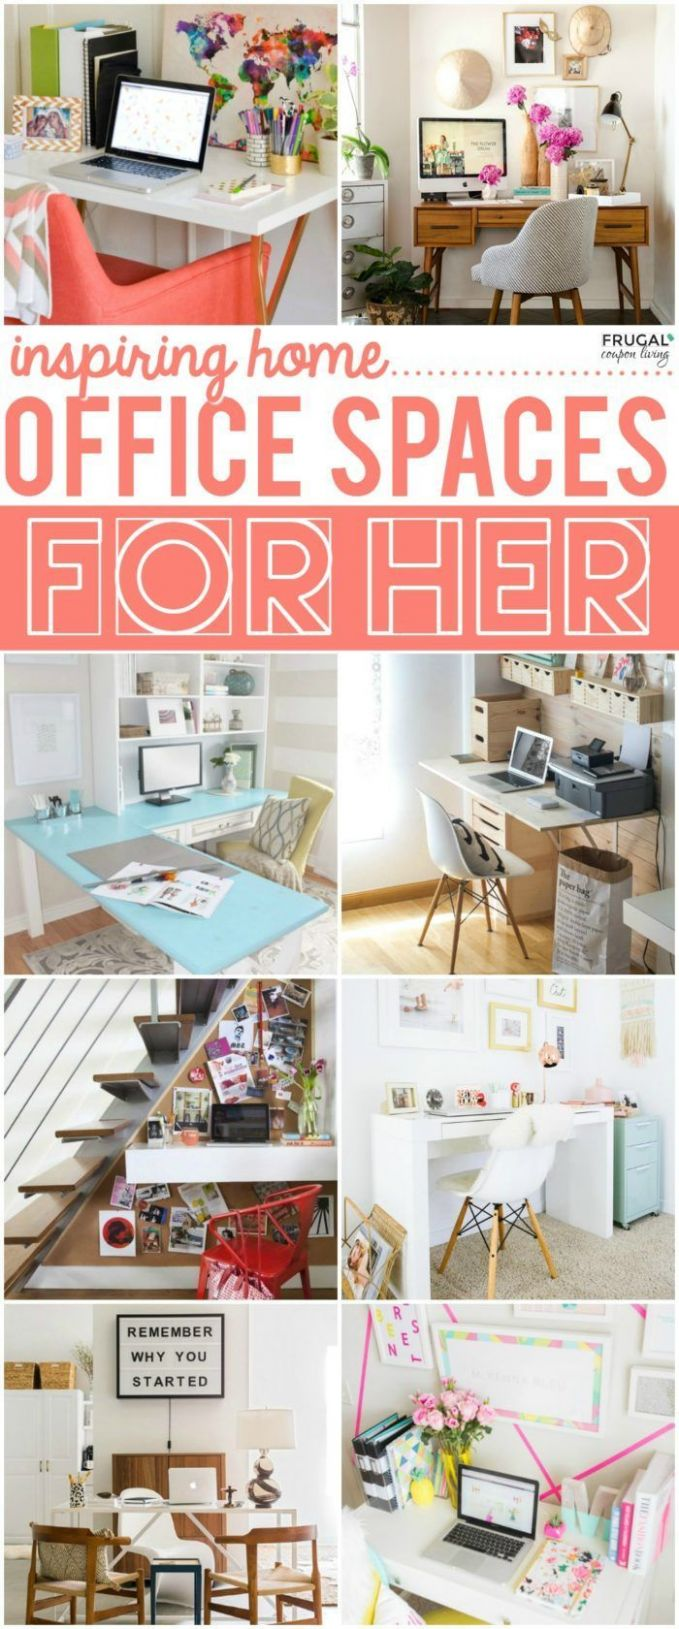 Best Ideas For Diy Crafts : Inspiring Home Office Decor Ideas for ..